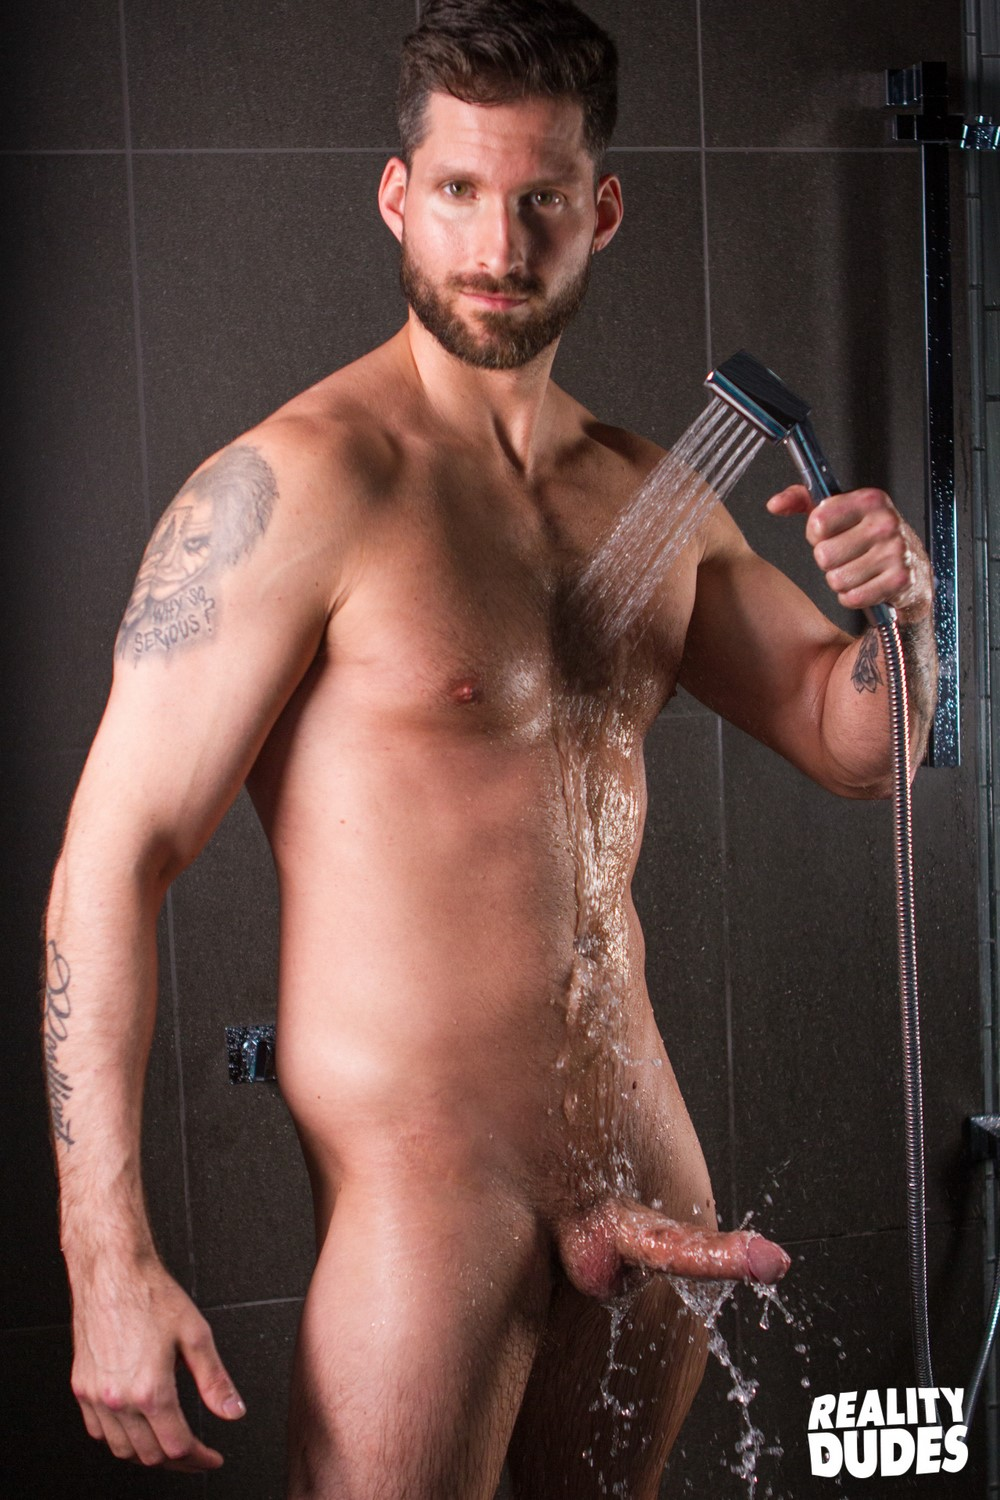 Buff dude showered cum